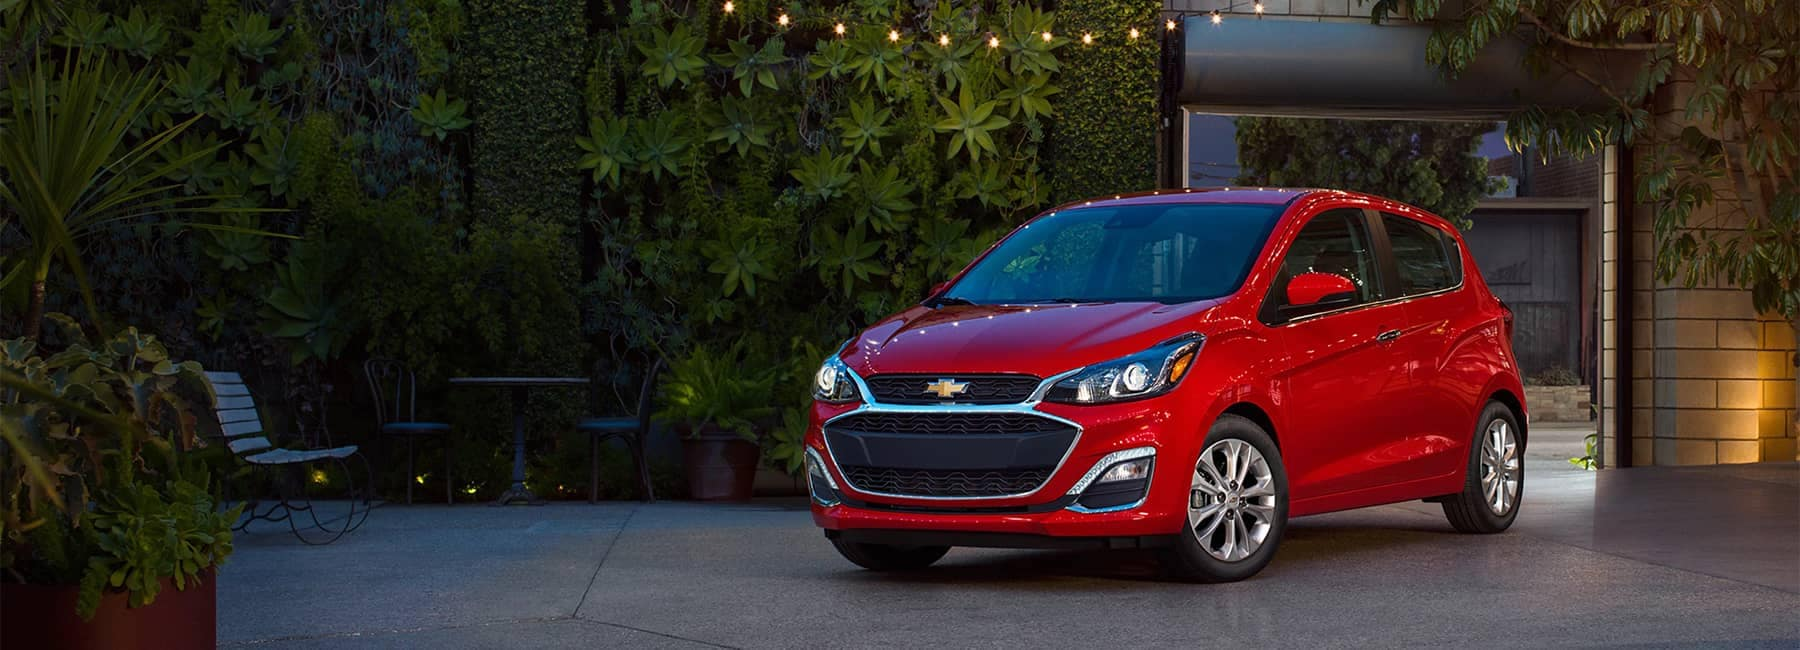 2020 Red Chevy Spark Parked at Angle